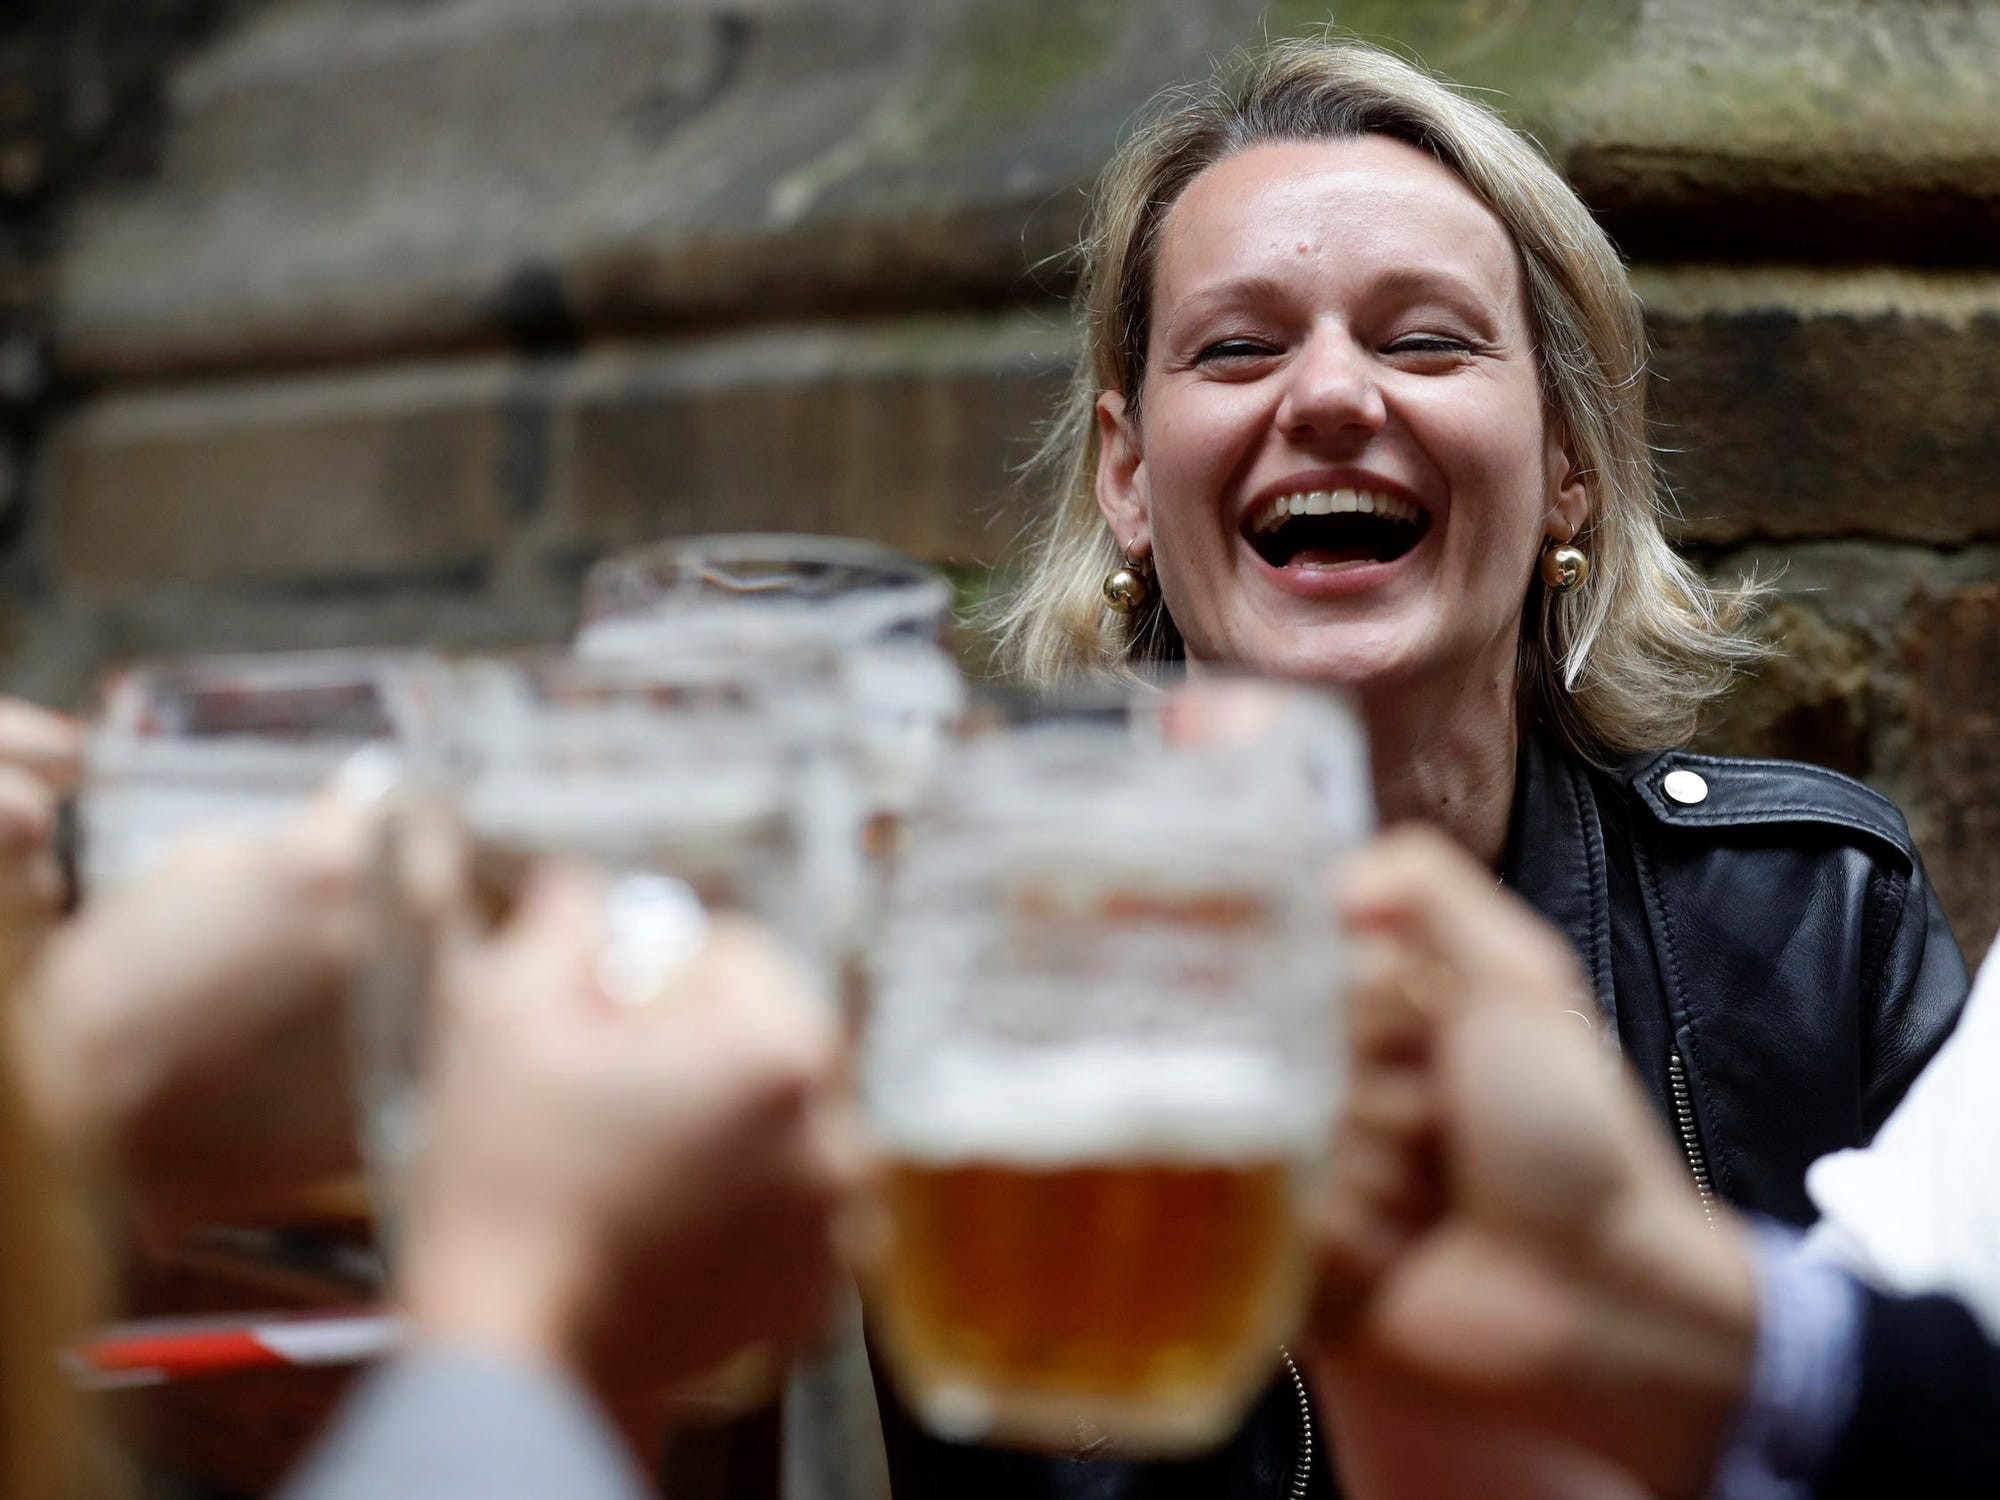 An individual laughing and holding up a beer.